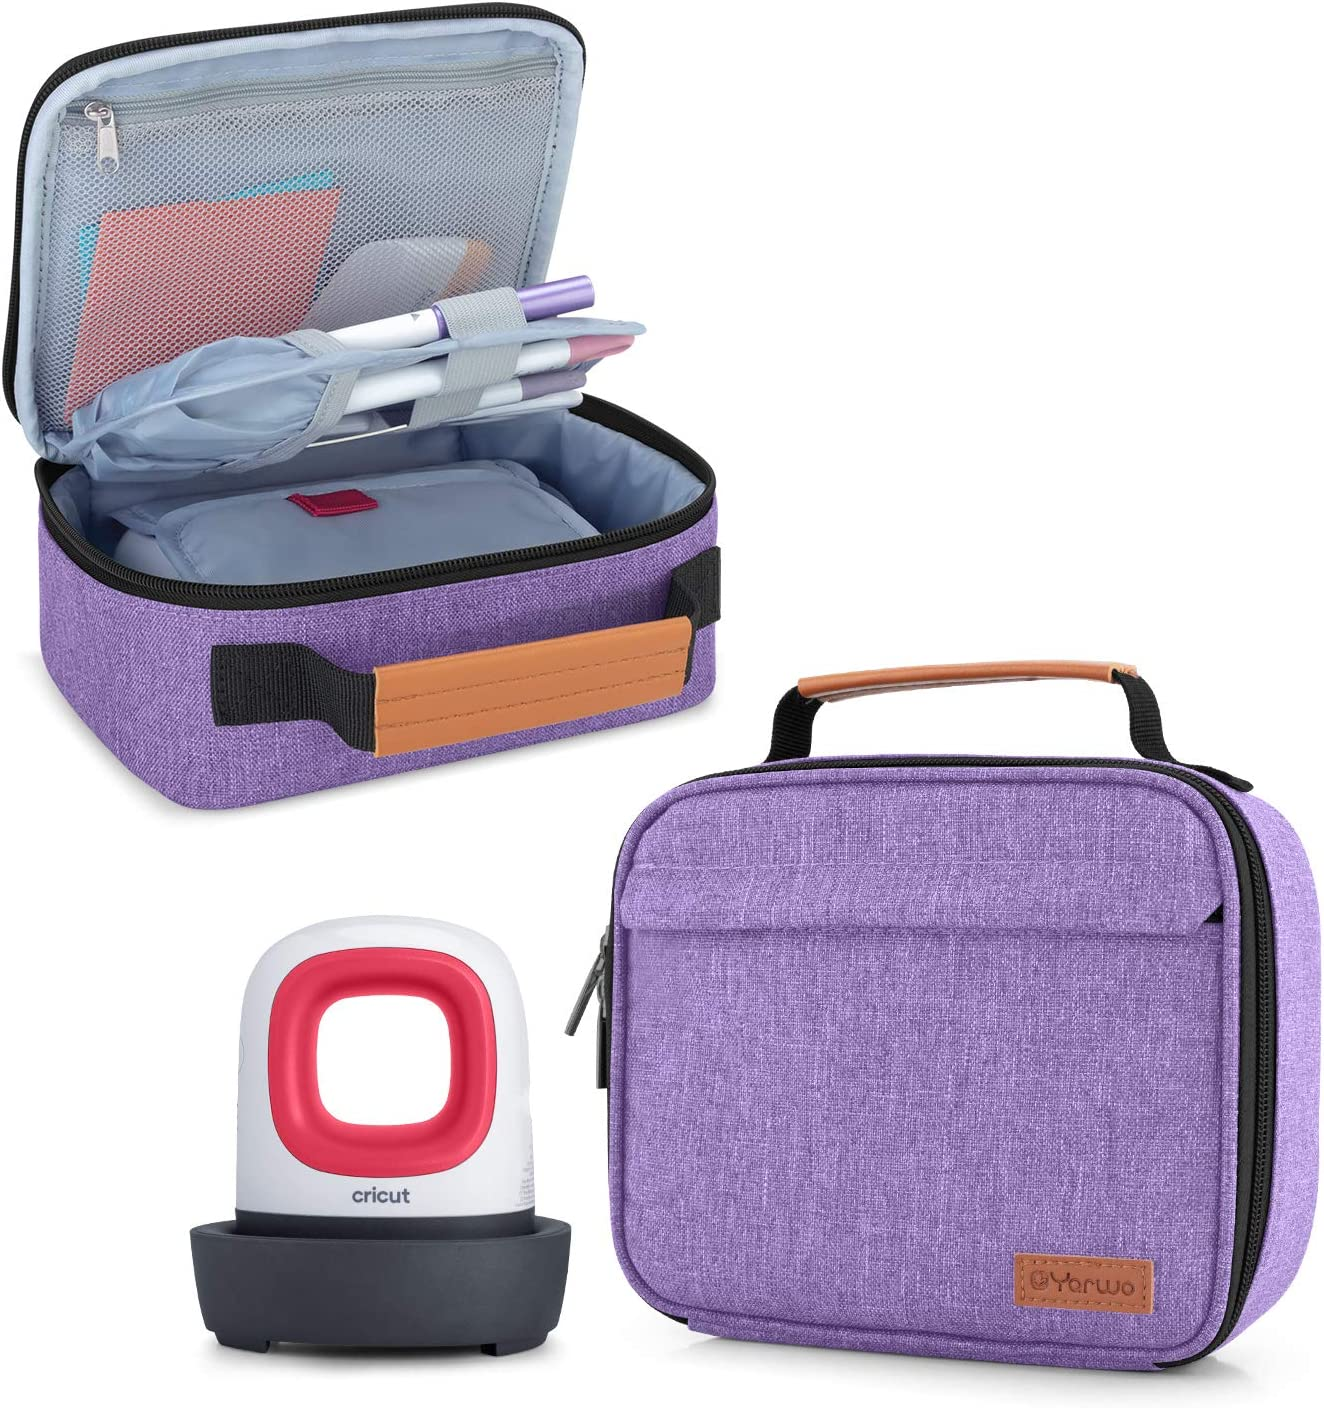 Yarwo Carrying Case for Cricut Easy Press Mini Portable Tote Bag Compatible with Heat Press Machine and Tools Purple